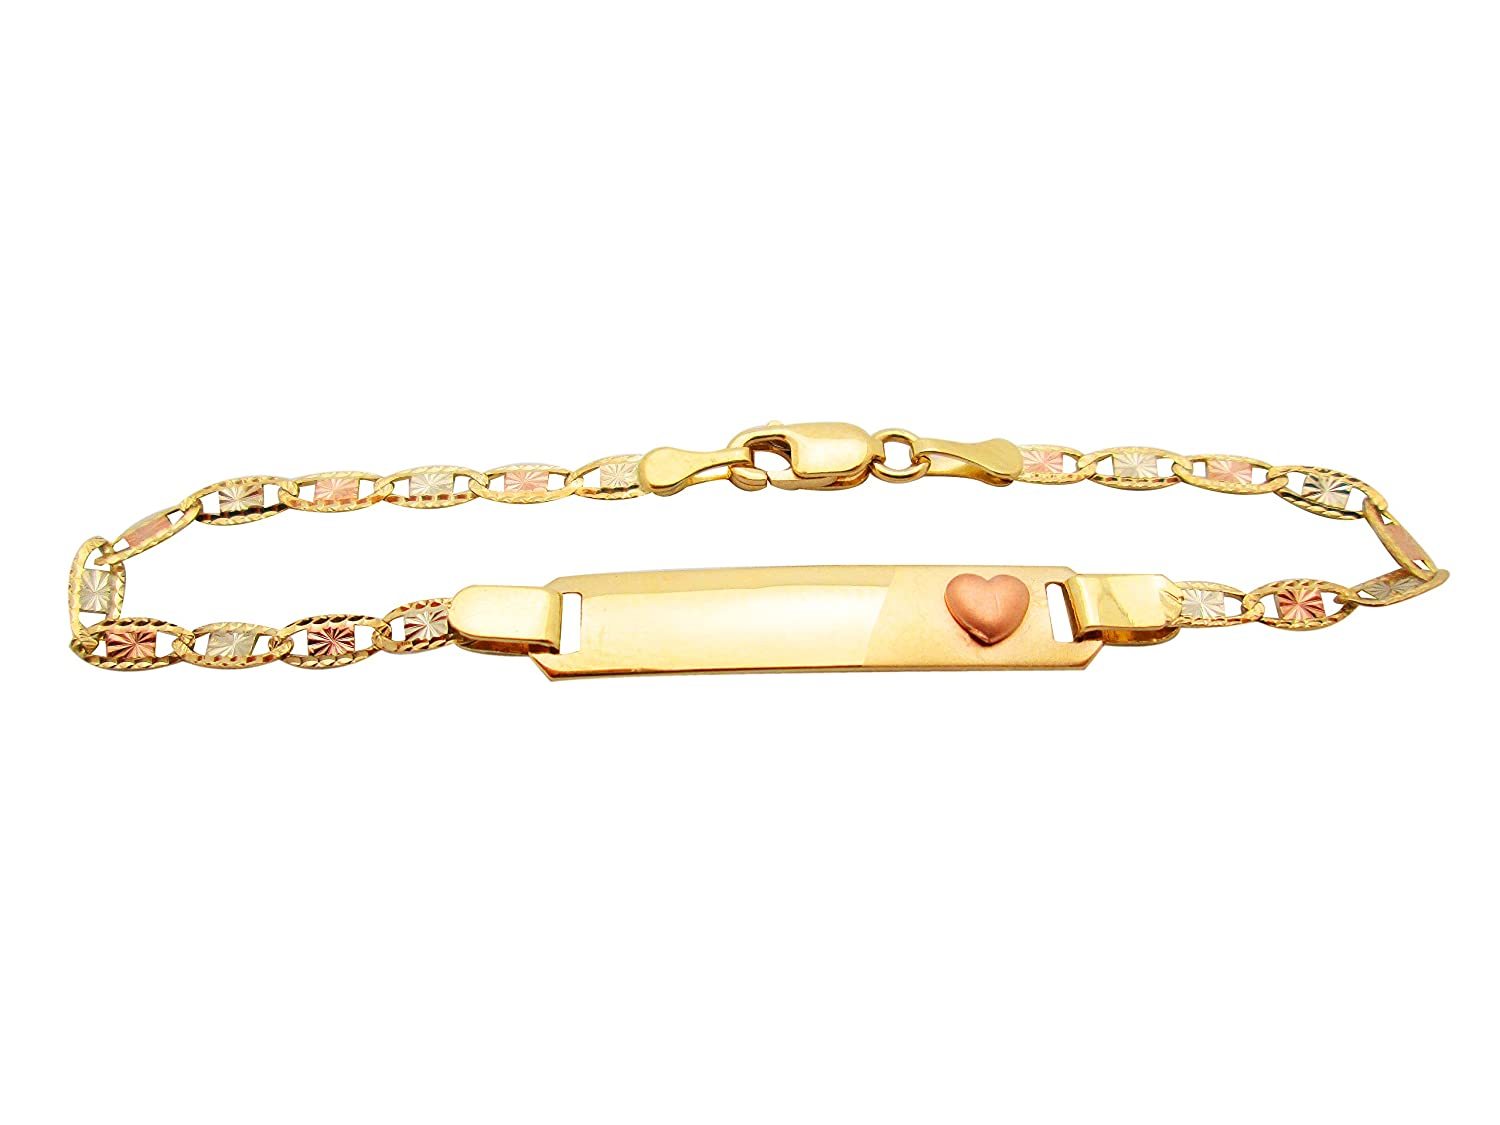 AMZ Jewelry Childrens Babies 10k Tri Gold Valentino Link ID Bracelet 5.5 in with Heart